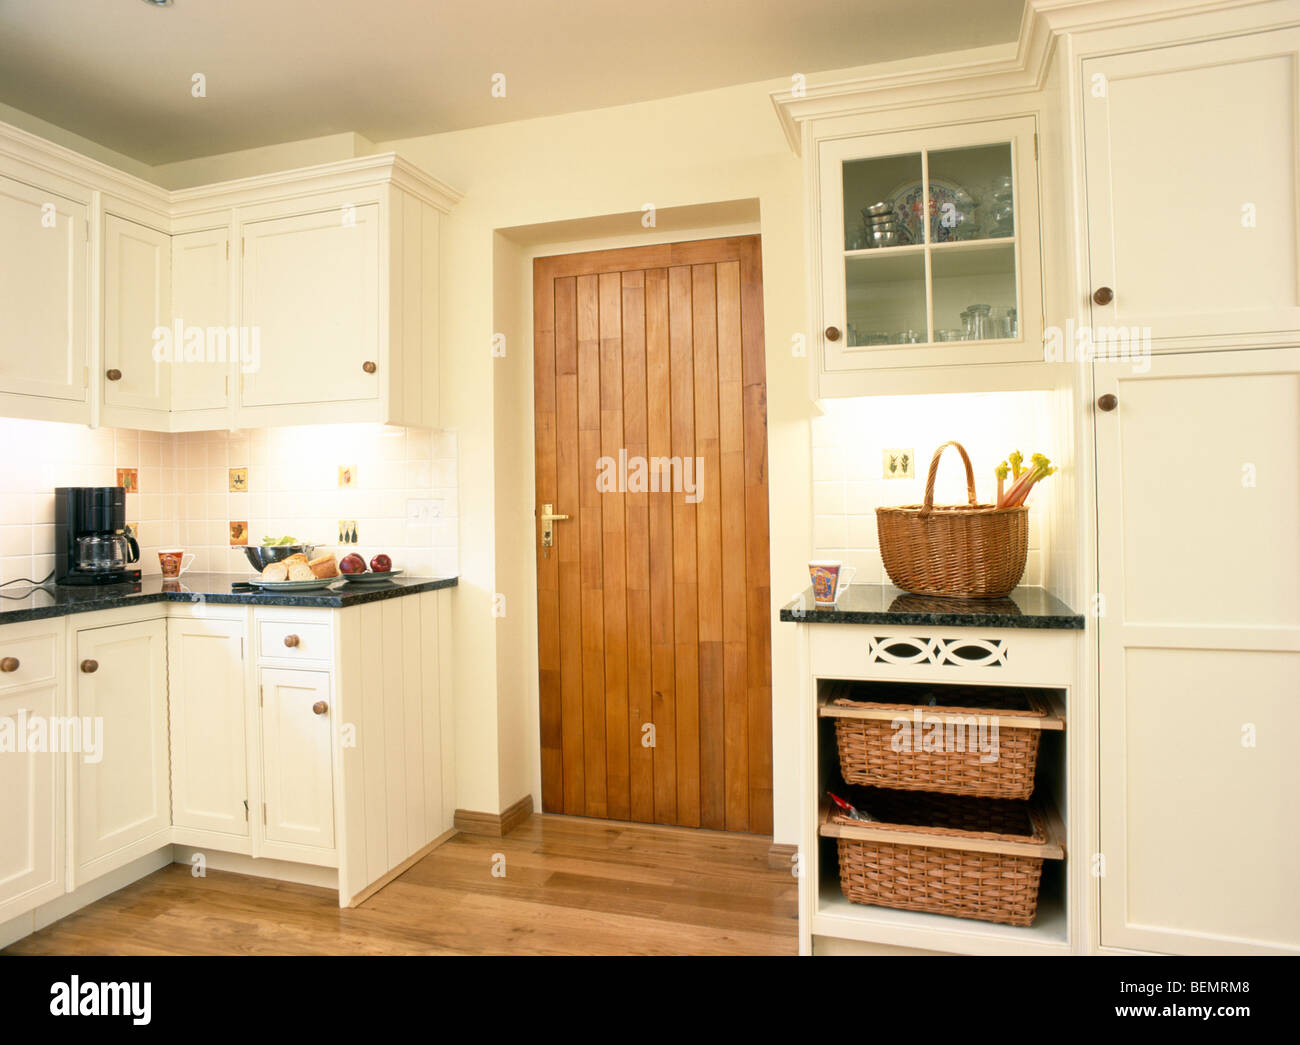 Stock Photo Storage Baskets In Fitted Unit Beside Wooden Door In Cream Country Kitchen